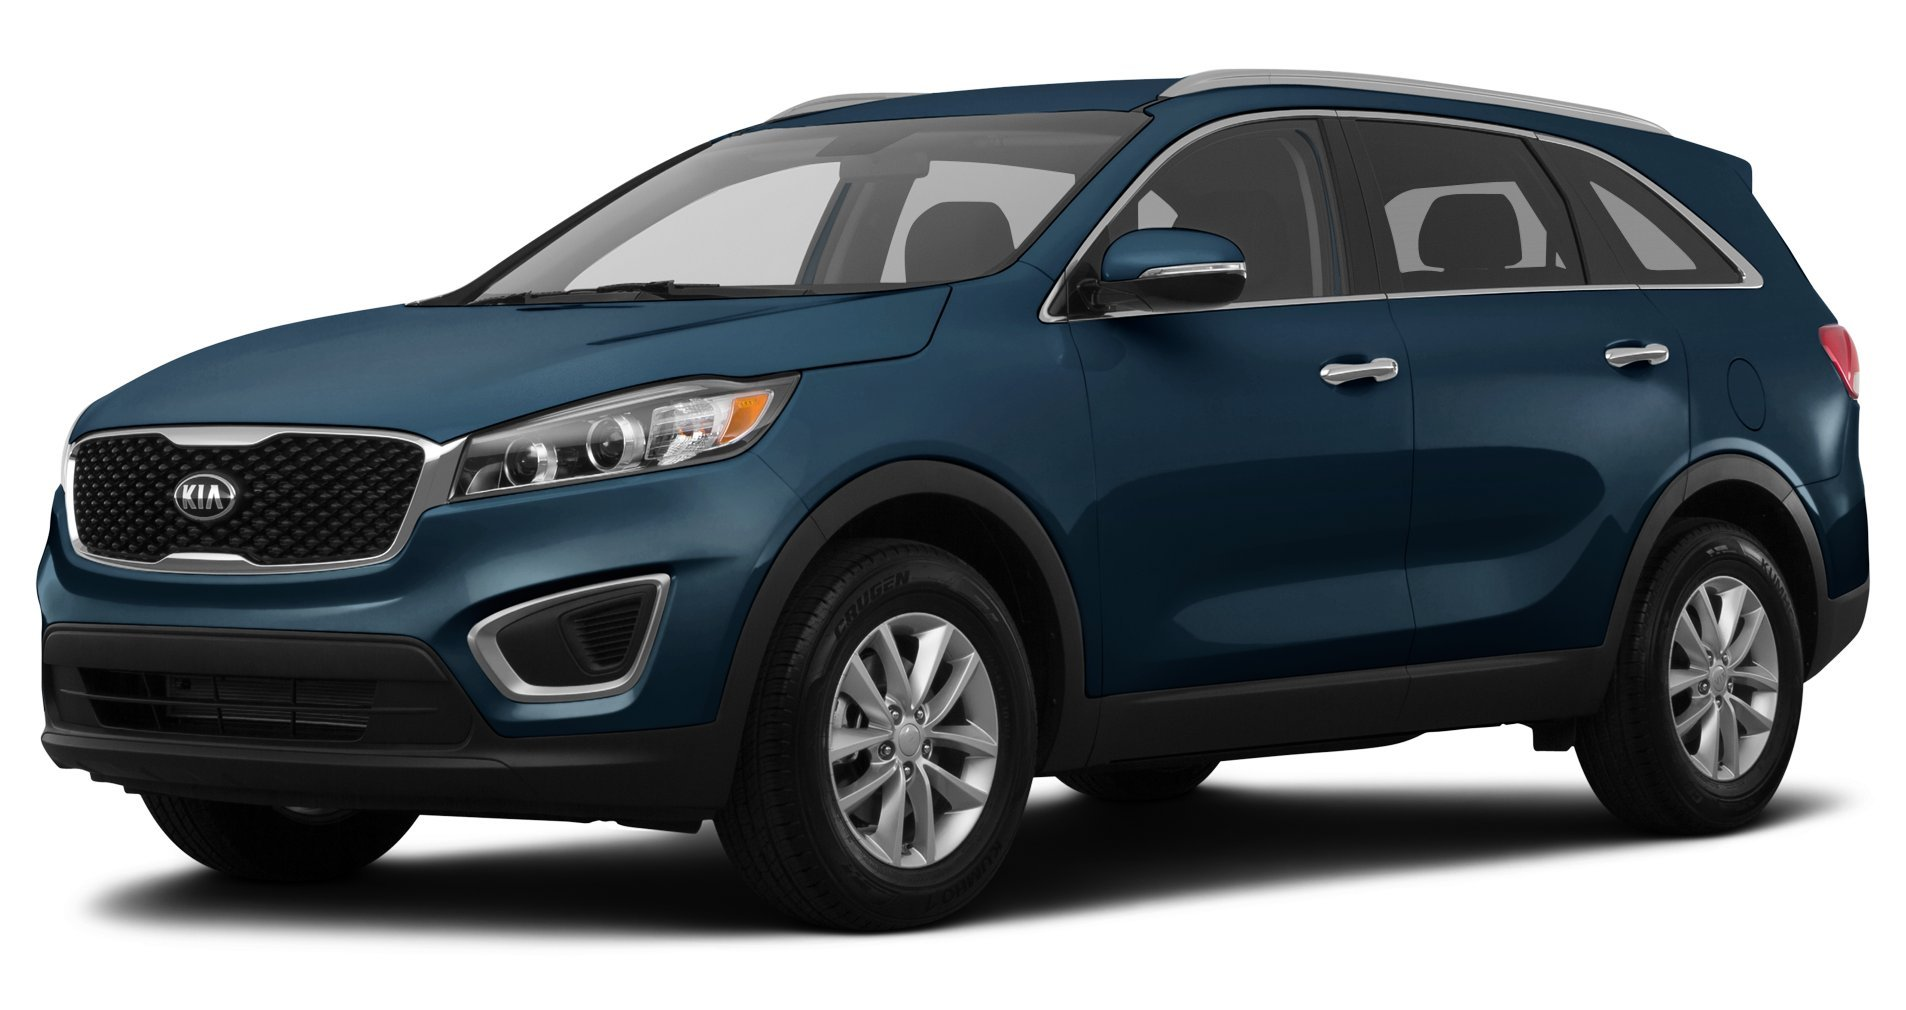 2017 kia sorento reviews images and specs vehicles. Black Bedroom Furniture Sets. Home Design Ideas